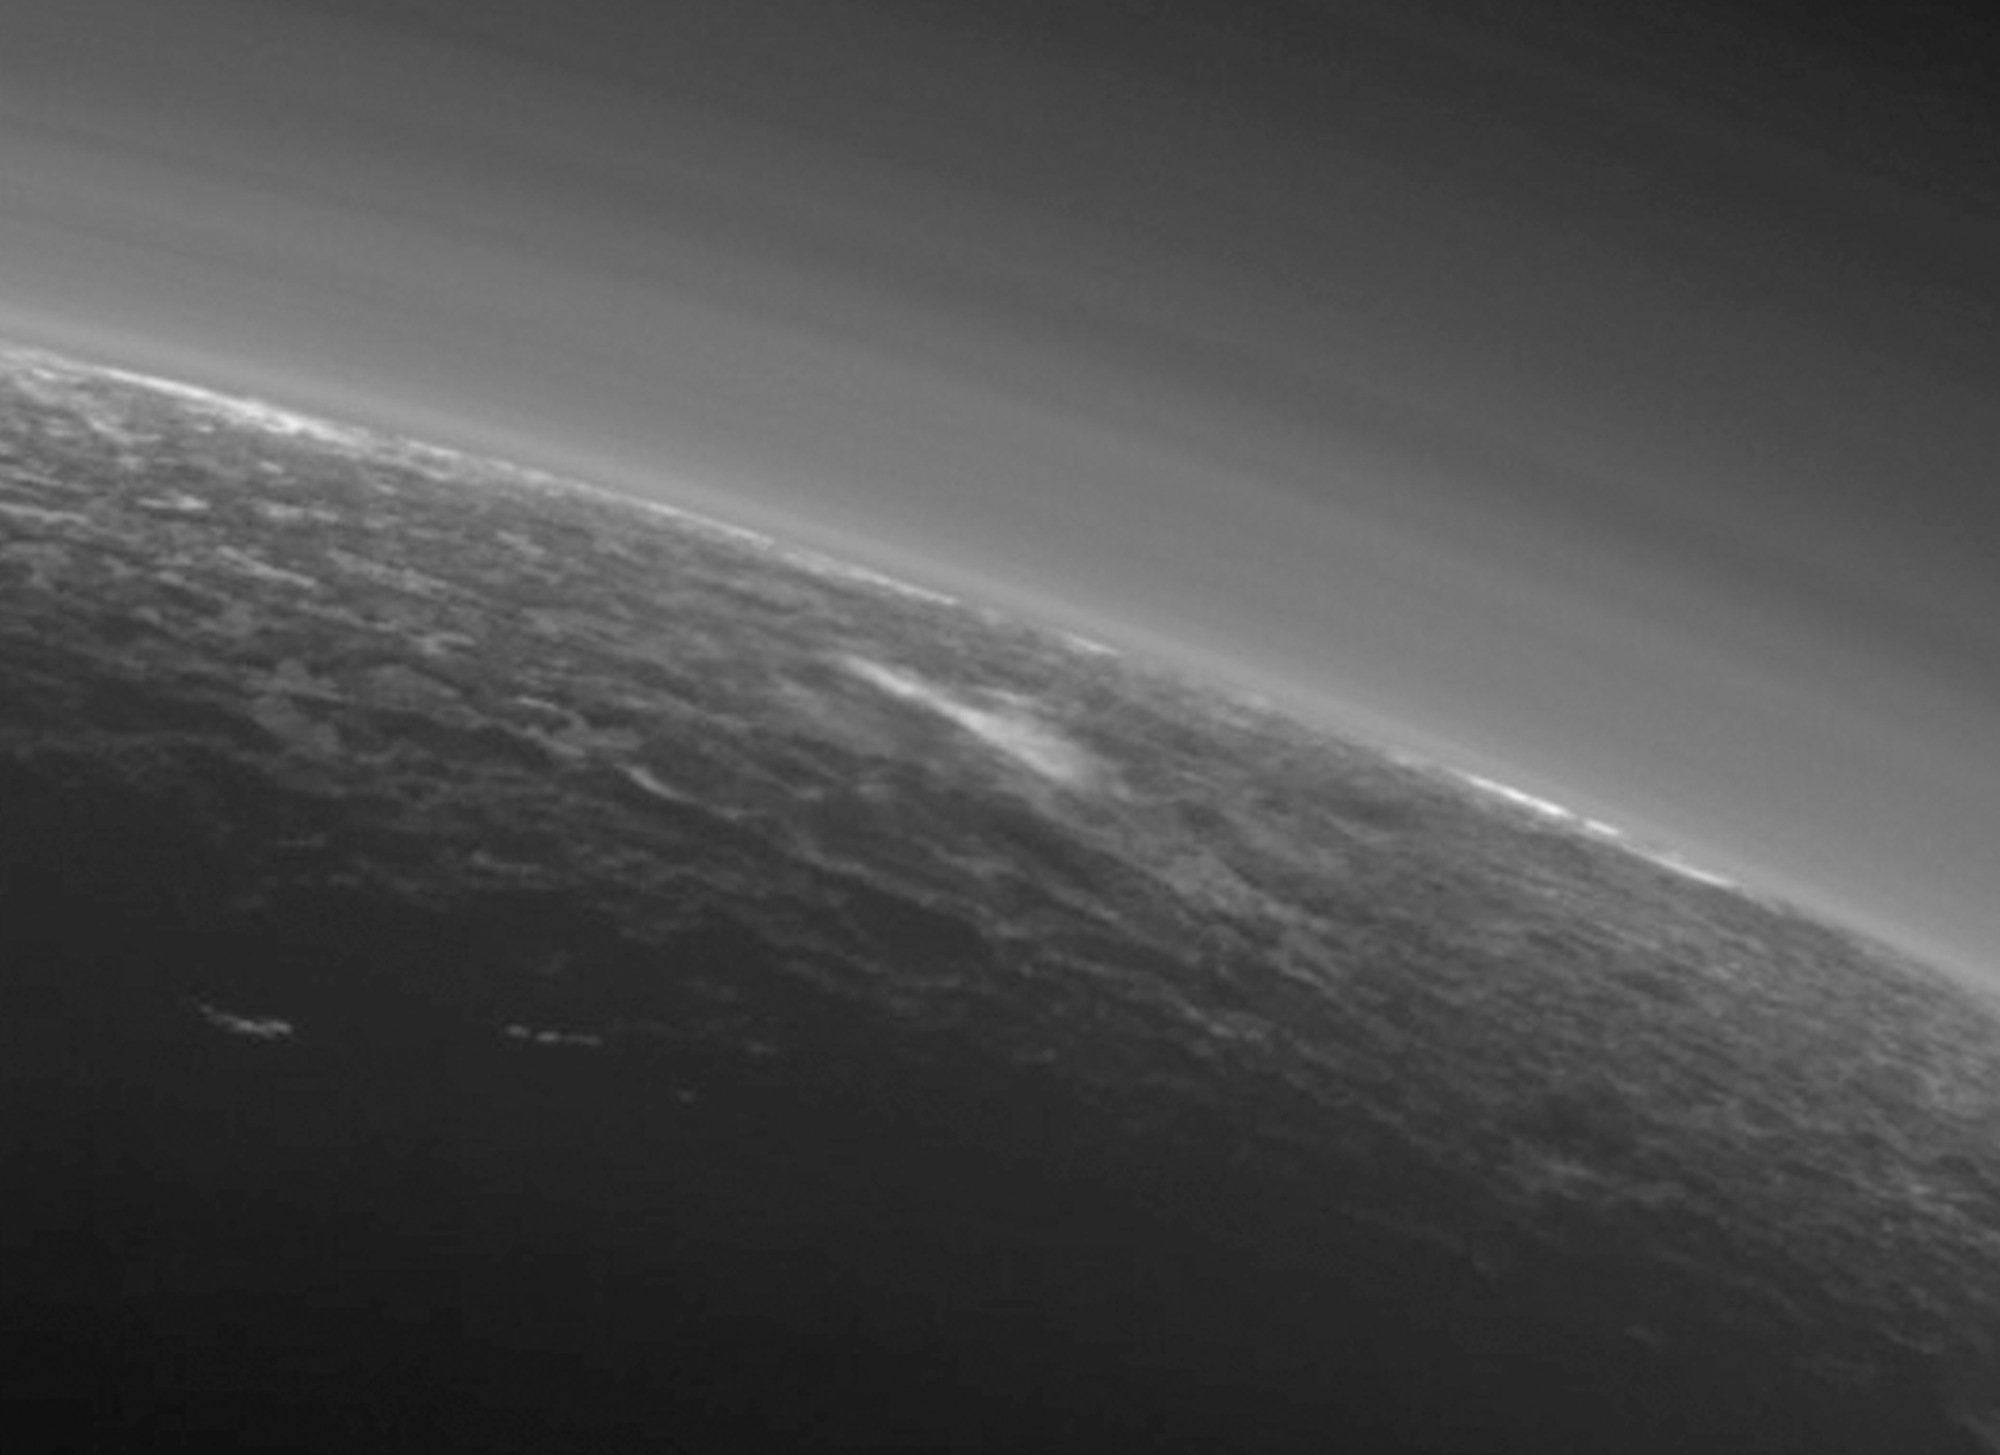 Inset A shows a detail of Pluto's crescent, including an intriguing bright wisp (near the centre) measuring tens of miles across that may be a discreet, low-lying cloud in Pluto's atmosphere; if so, it would be the only one yet identified in New Horizons imagery. This cloud — if that's what it is — is visible for the same reason the haze layers are so bright: illumination from the sunlight grazing Pluto's surface at a low angle. Atmospheric models suggest that methane clouds can occasionally form in Pluto's atmosphere. The scene in this inset is 140 miles (230 kilometres) across. Image credit: NASA/JHUAPL/SwRI.